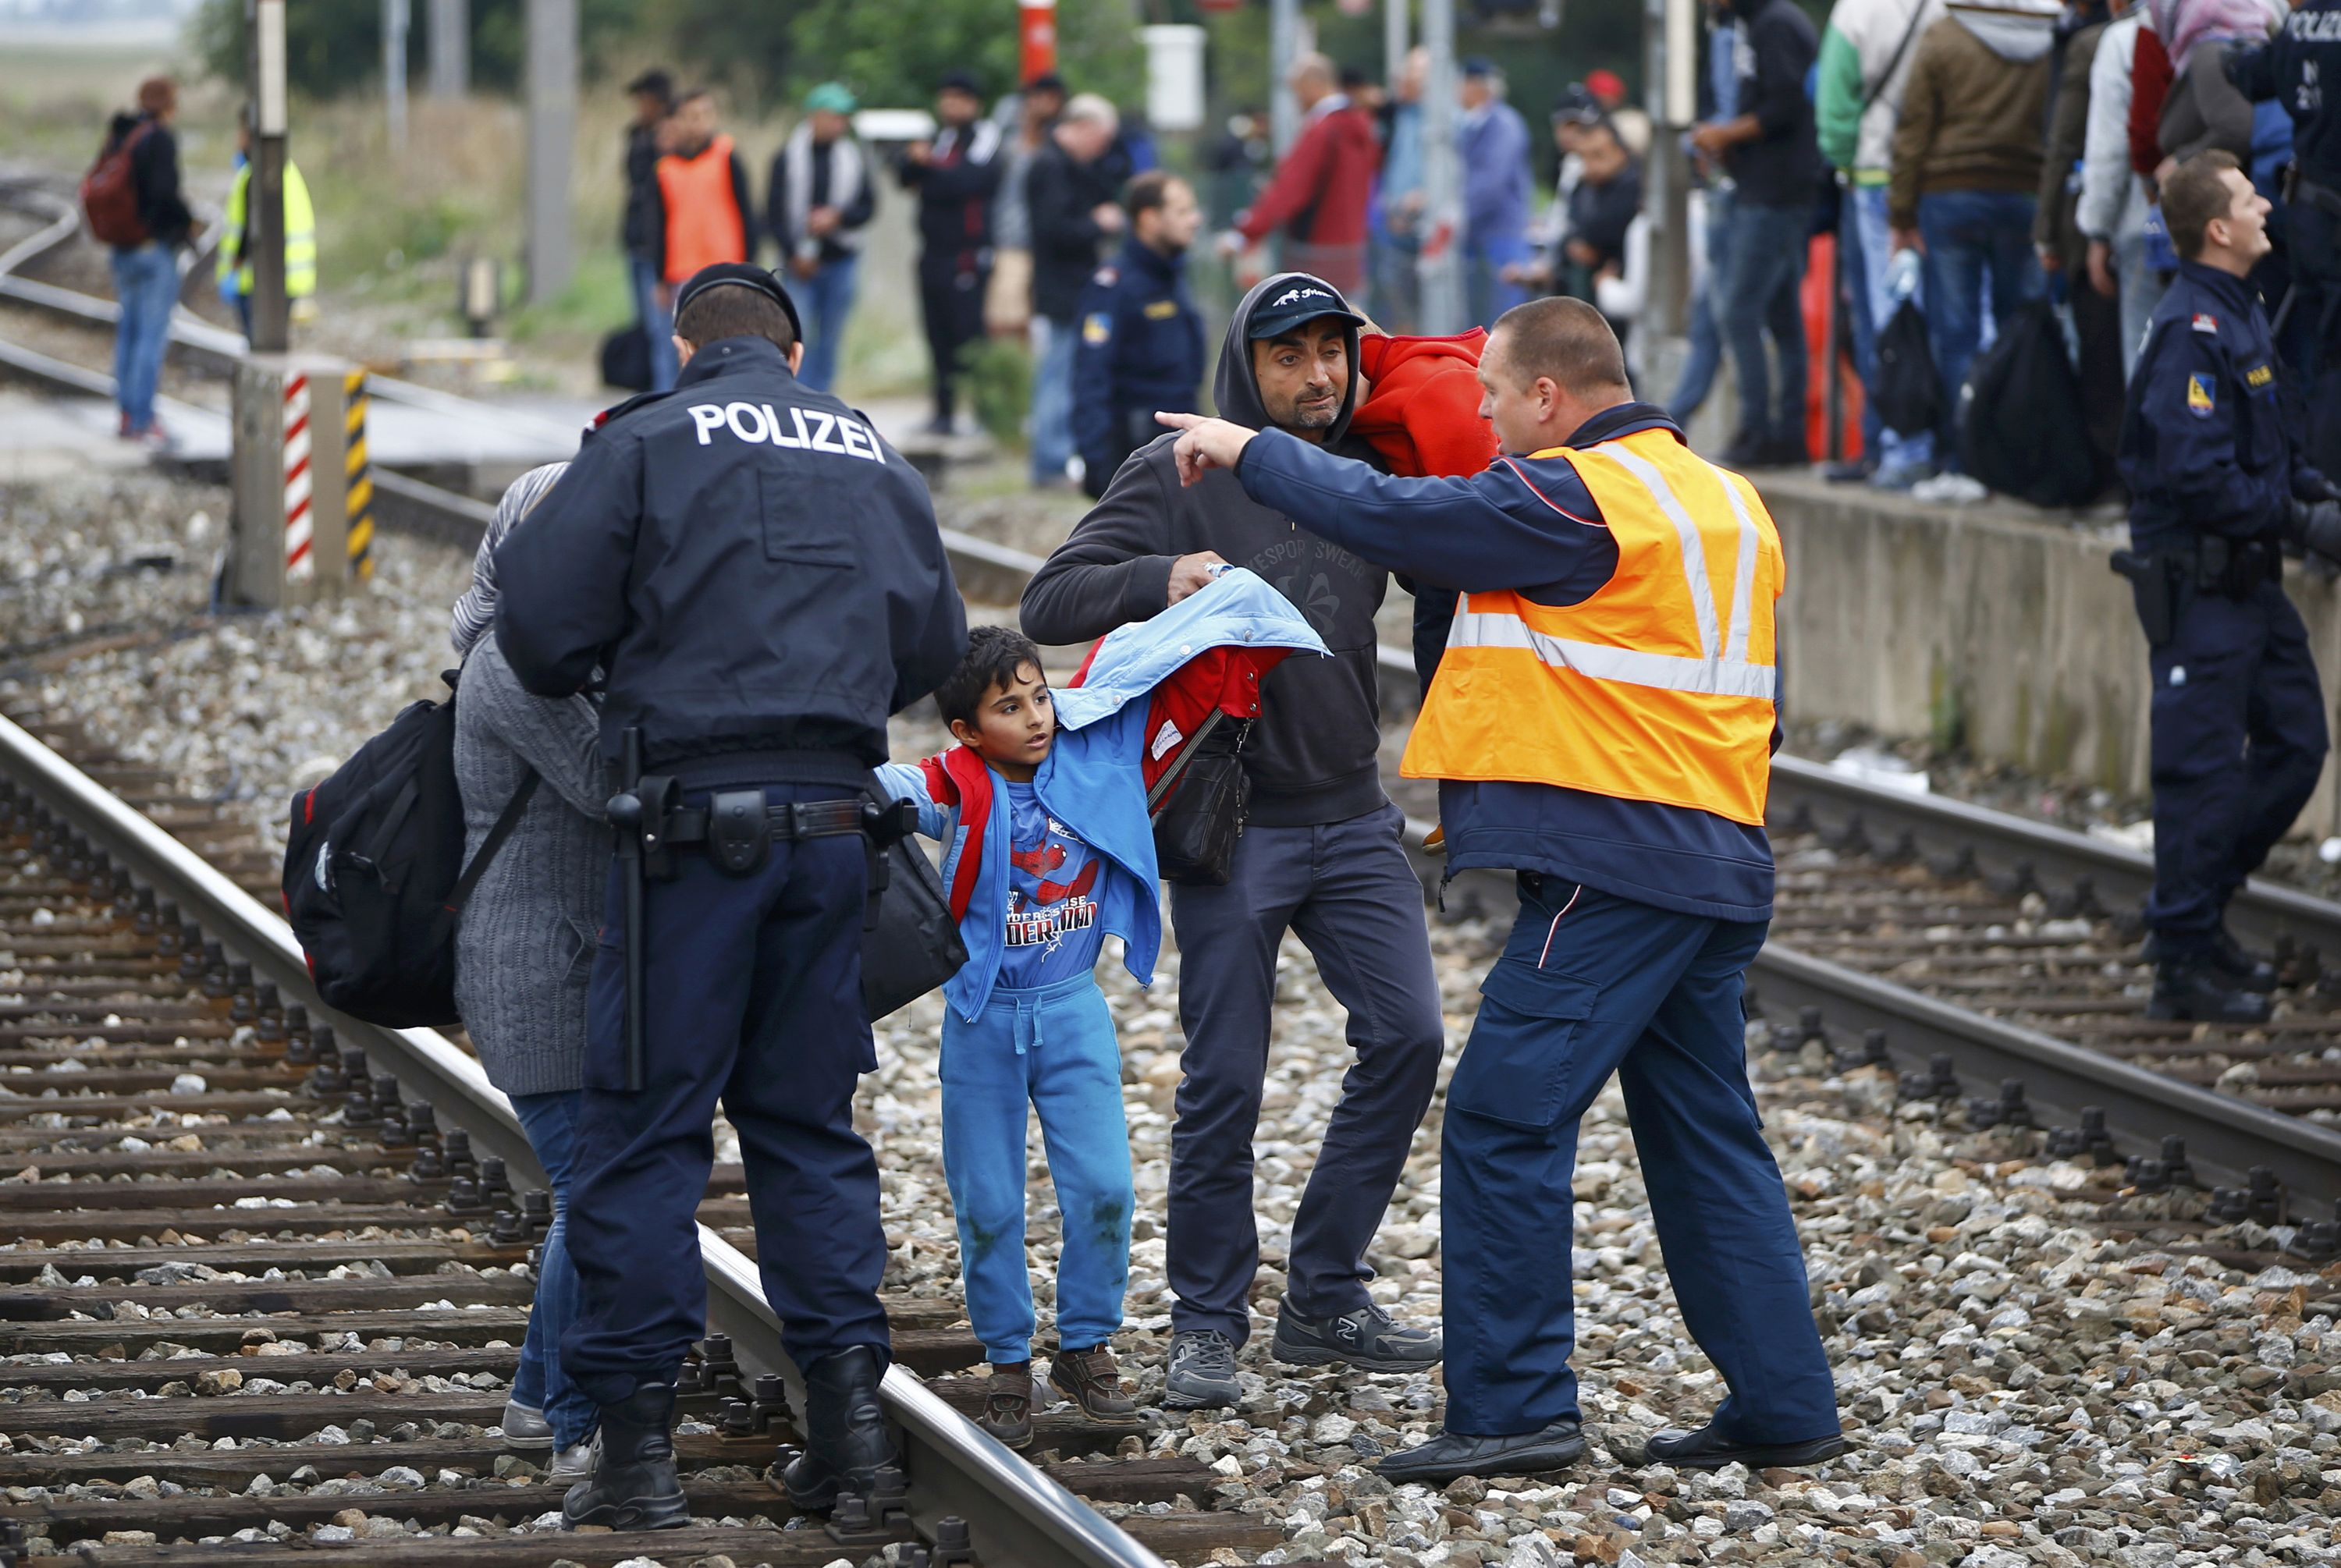 A policeman and a railway worker attempt to keep migrants off the rail track at the train station in Nickelsdorf, Austria, September 11, 2015. The train link between Austria and Hungary will remain closed through the weekend because of the continued strain on the system from the large inflow of migrants, the Austrian rail operator OeBB said in a statement on Friday. REUTERS/Leonhard Foeger